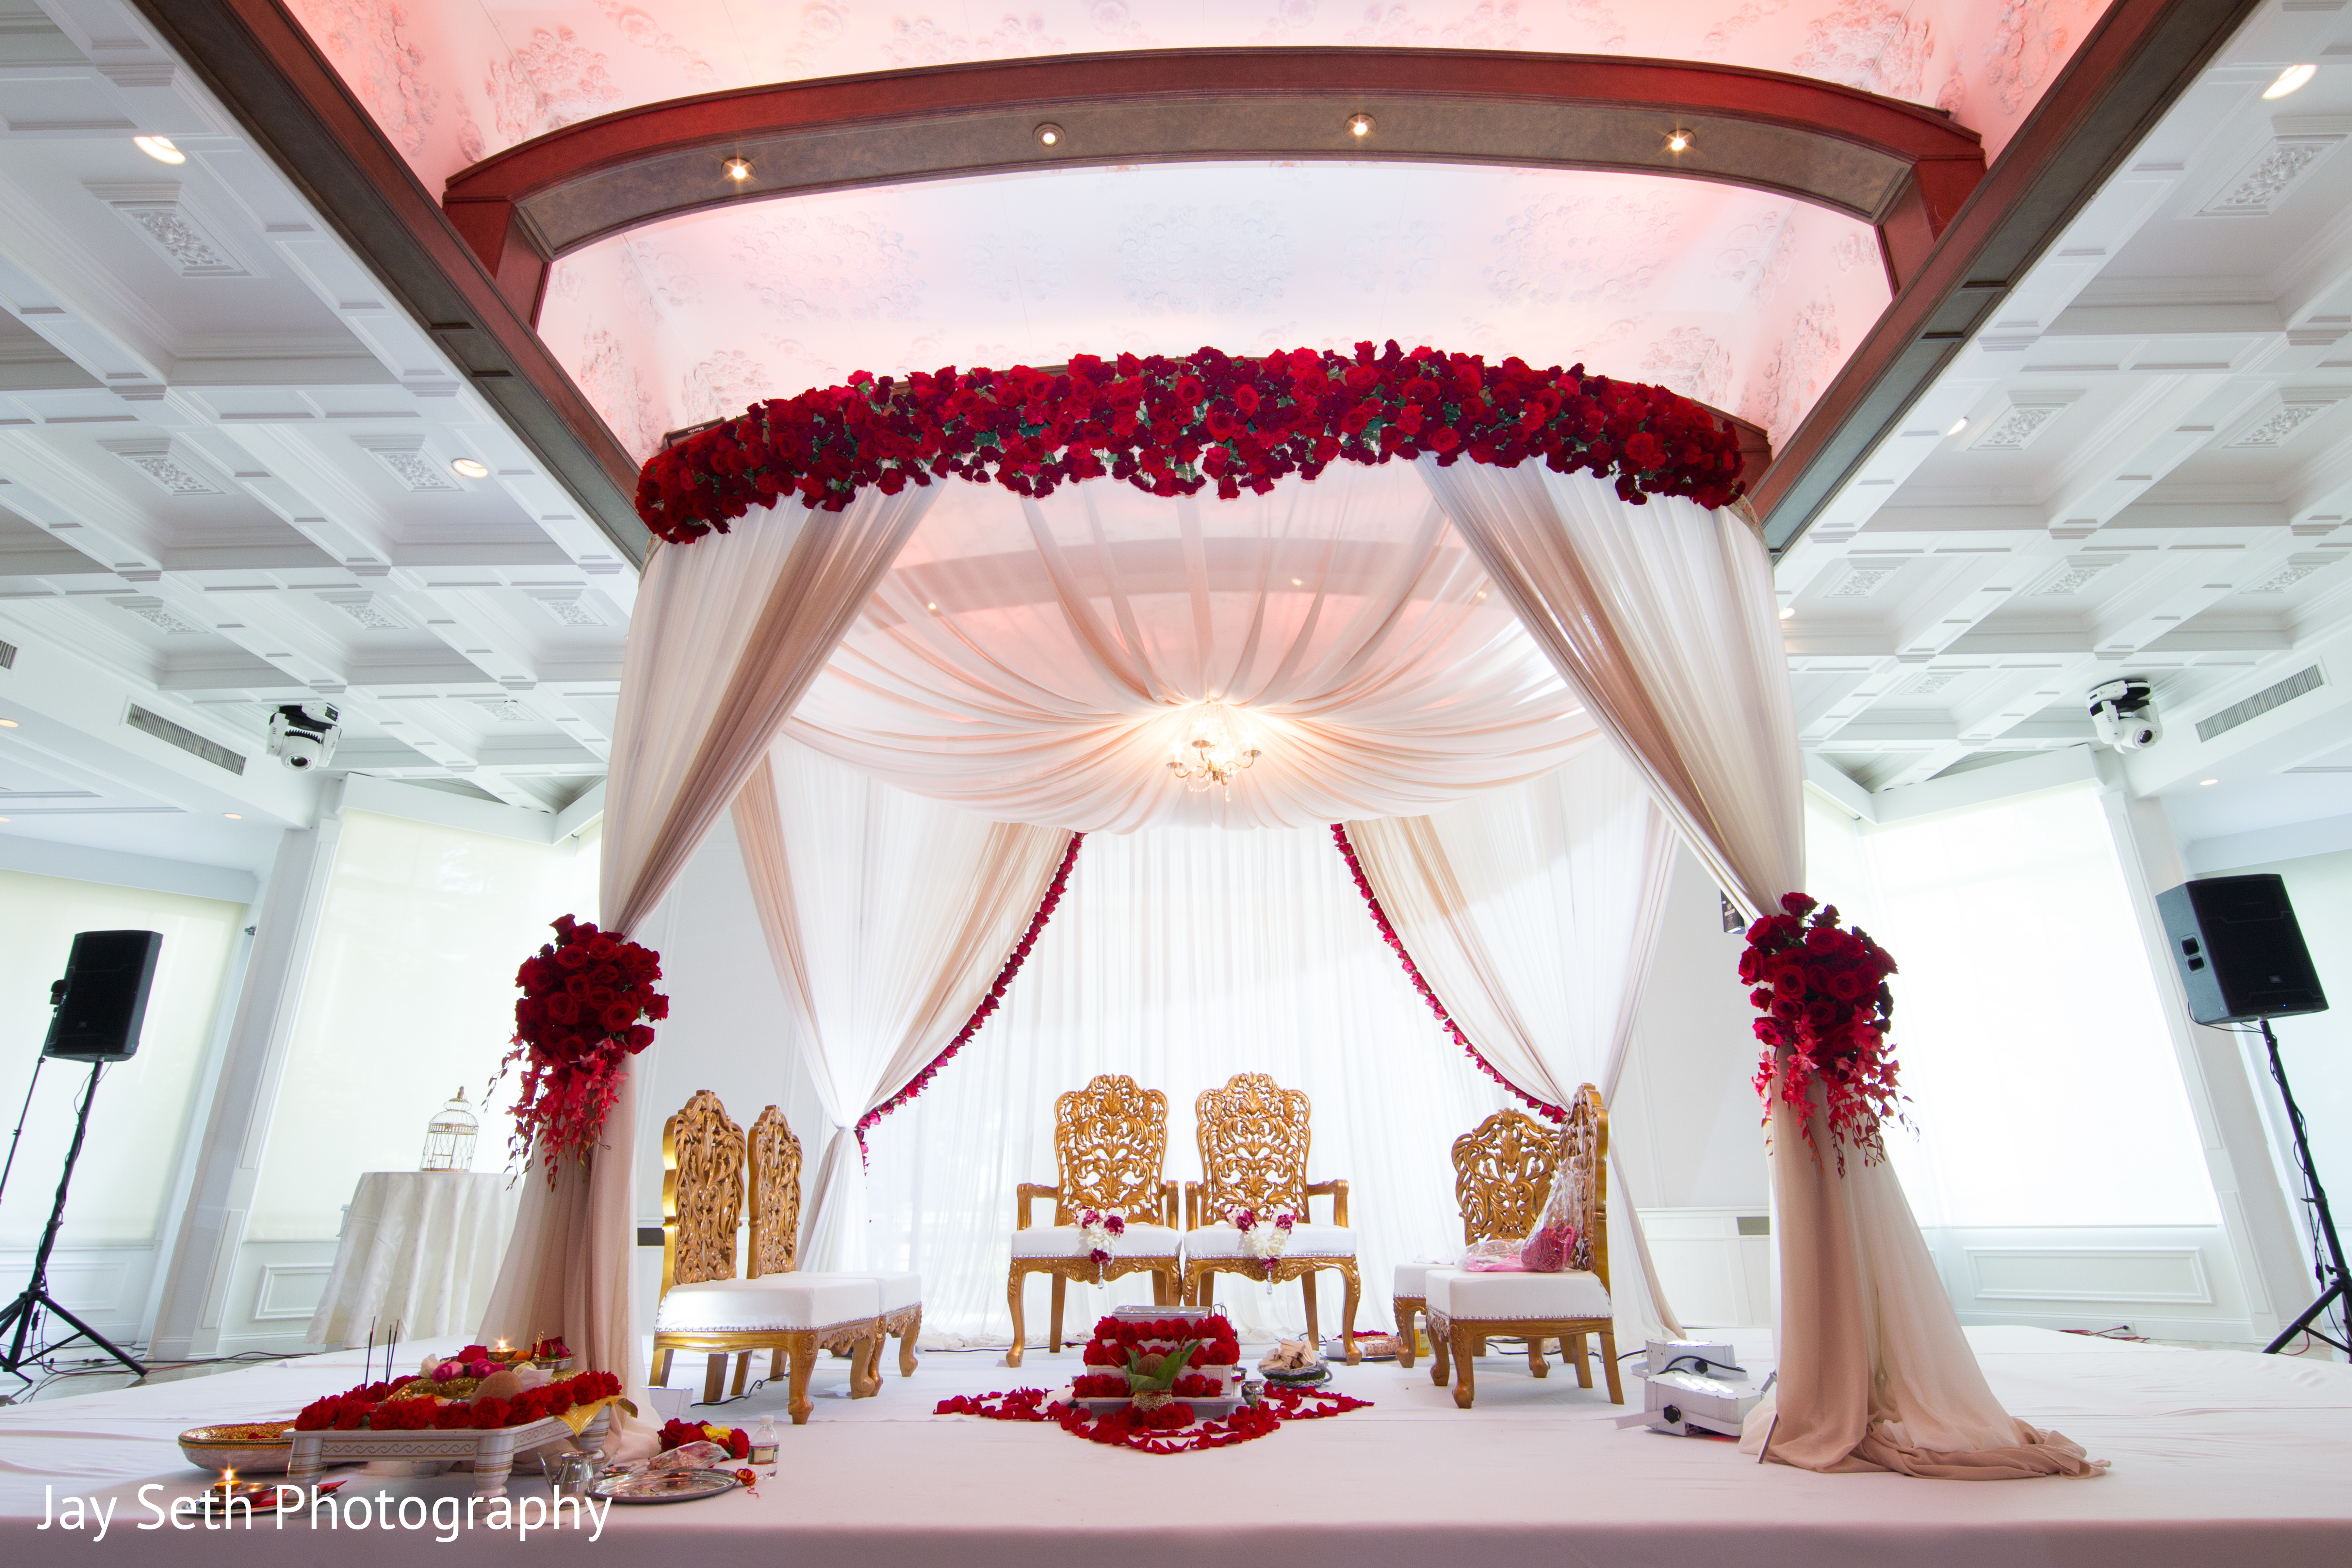 ceremony in woodland park nj indian wedding by jay seth photography maharani weddings. Black Bedroom Furniture Sets. Home Design Ideas